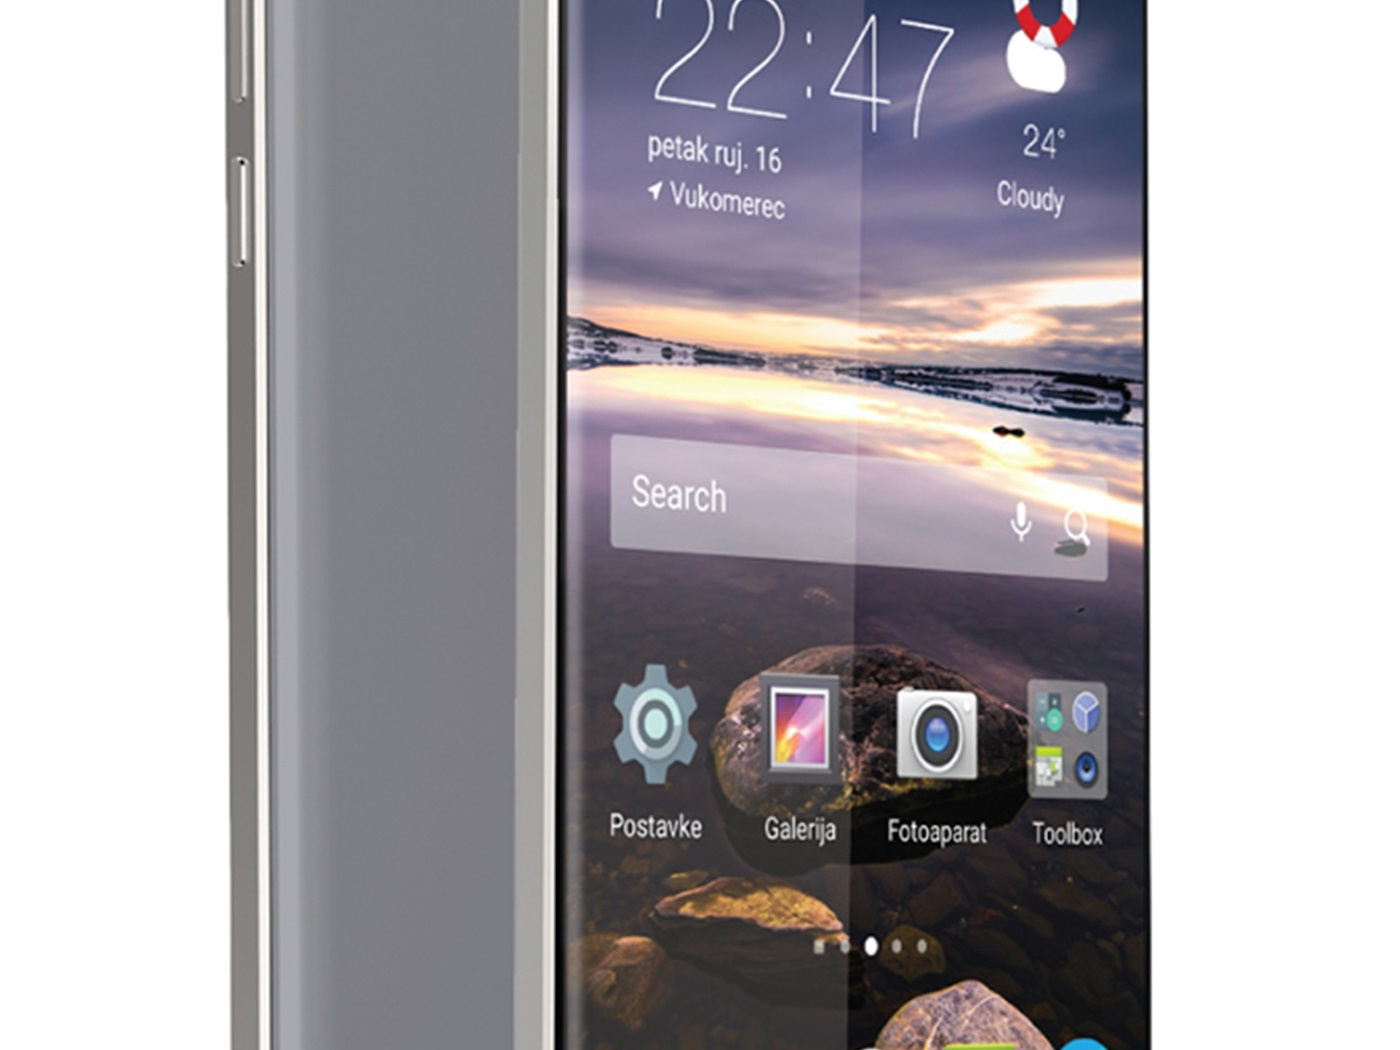 MeanIt Q9 smartphone